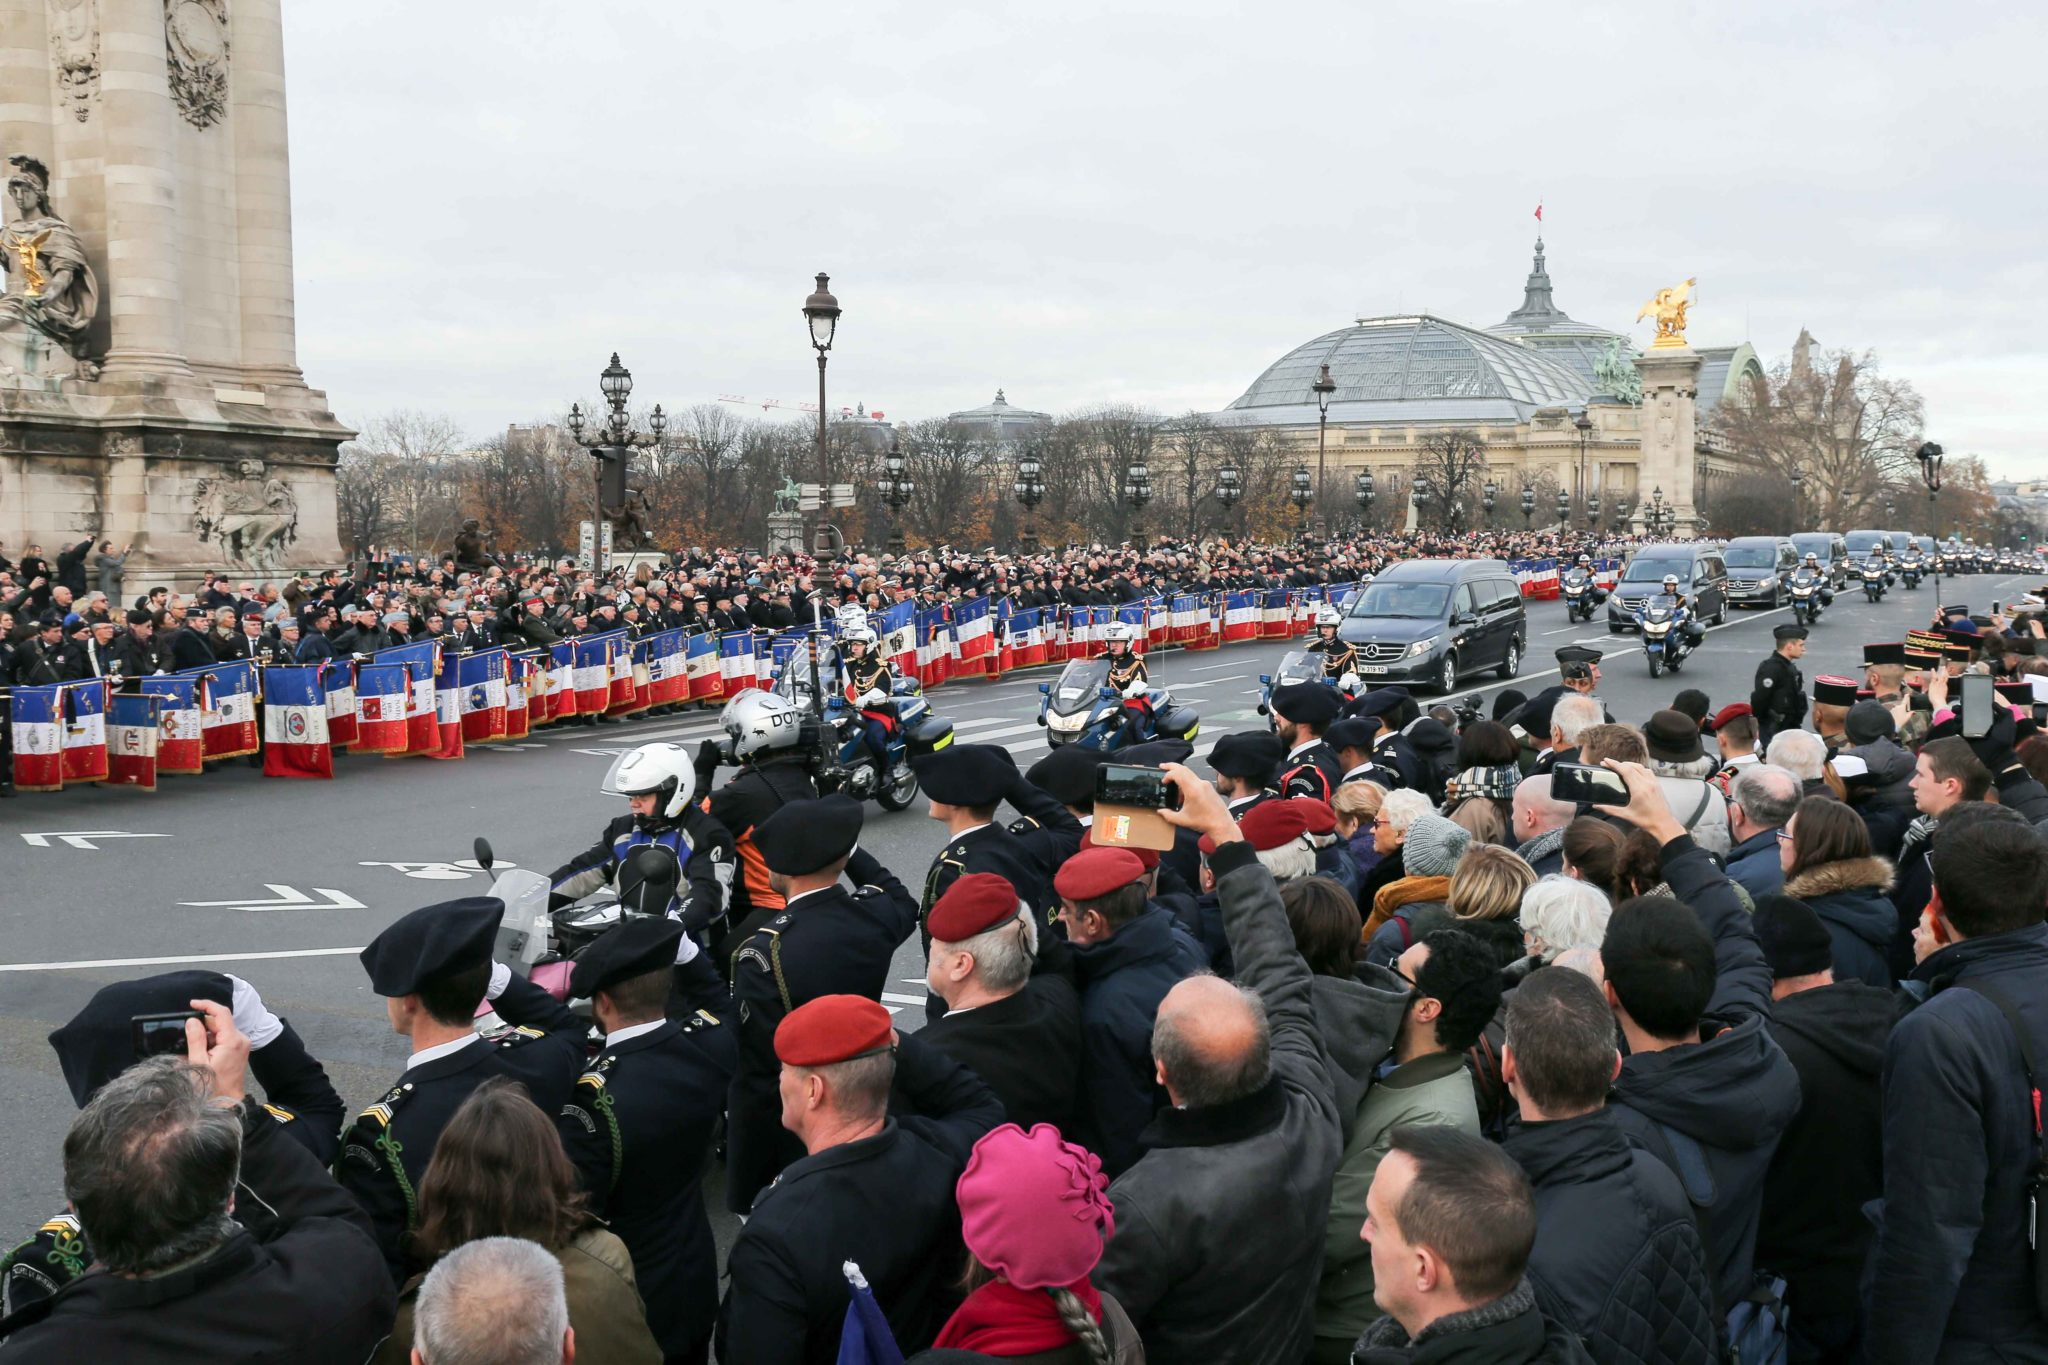 Soldiers and flag bearers salute as the funeral convoy passes on Alexandre III Bridge in front of the Invalides monument in Paris on December 2, 2019, ahead of a ceremony to pay tribute to 13 French soldiers who died in a helicopter collision in Mali on No